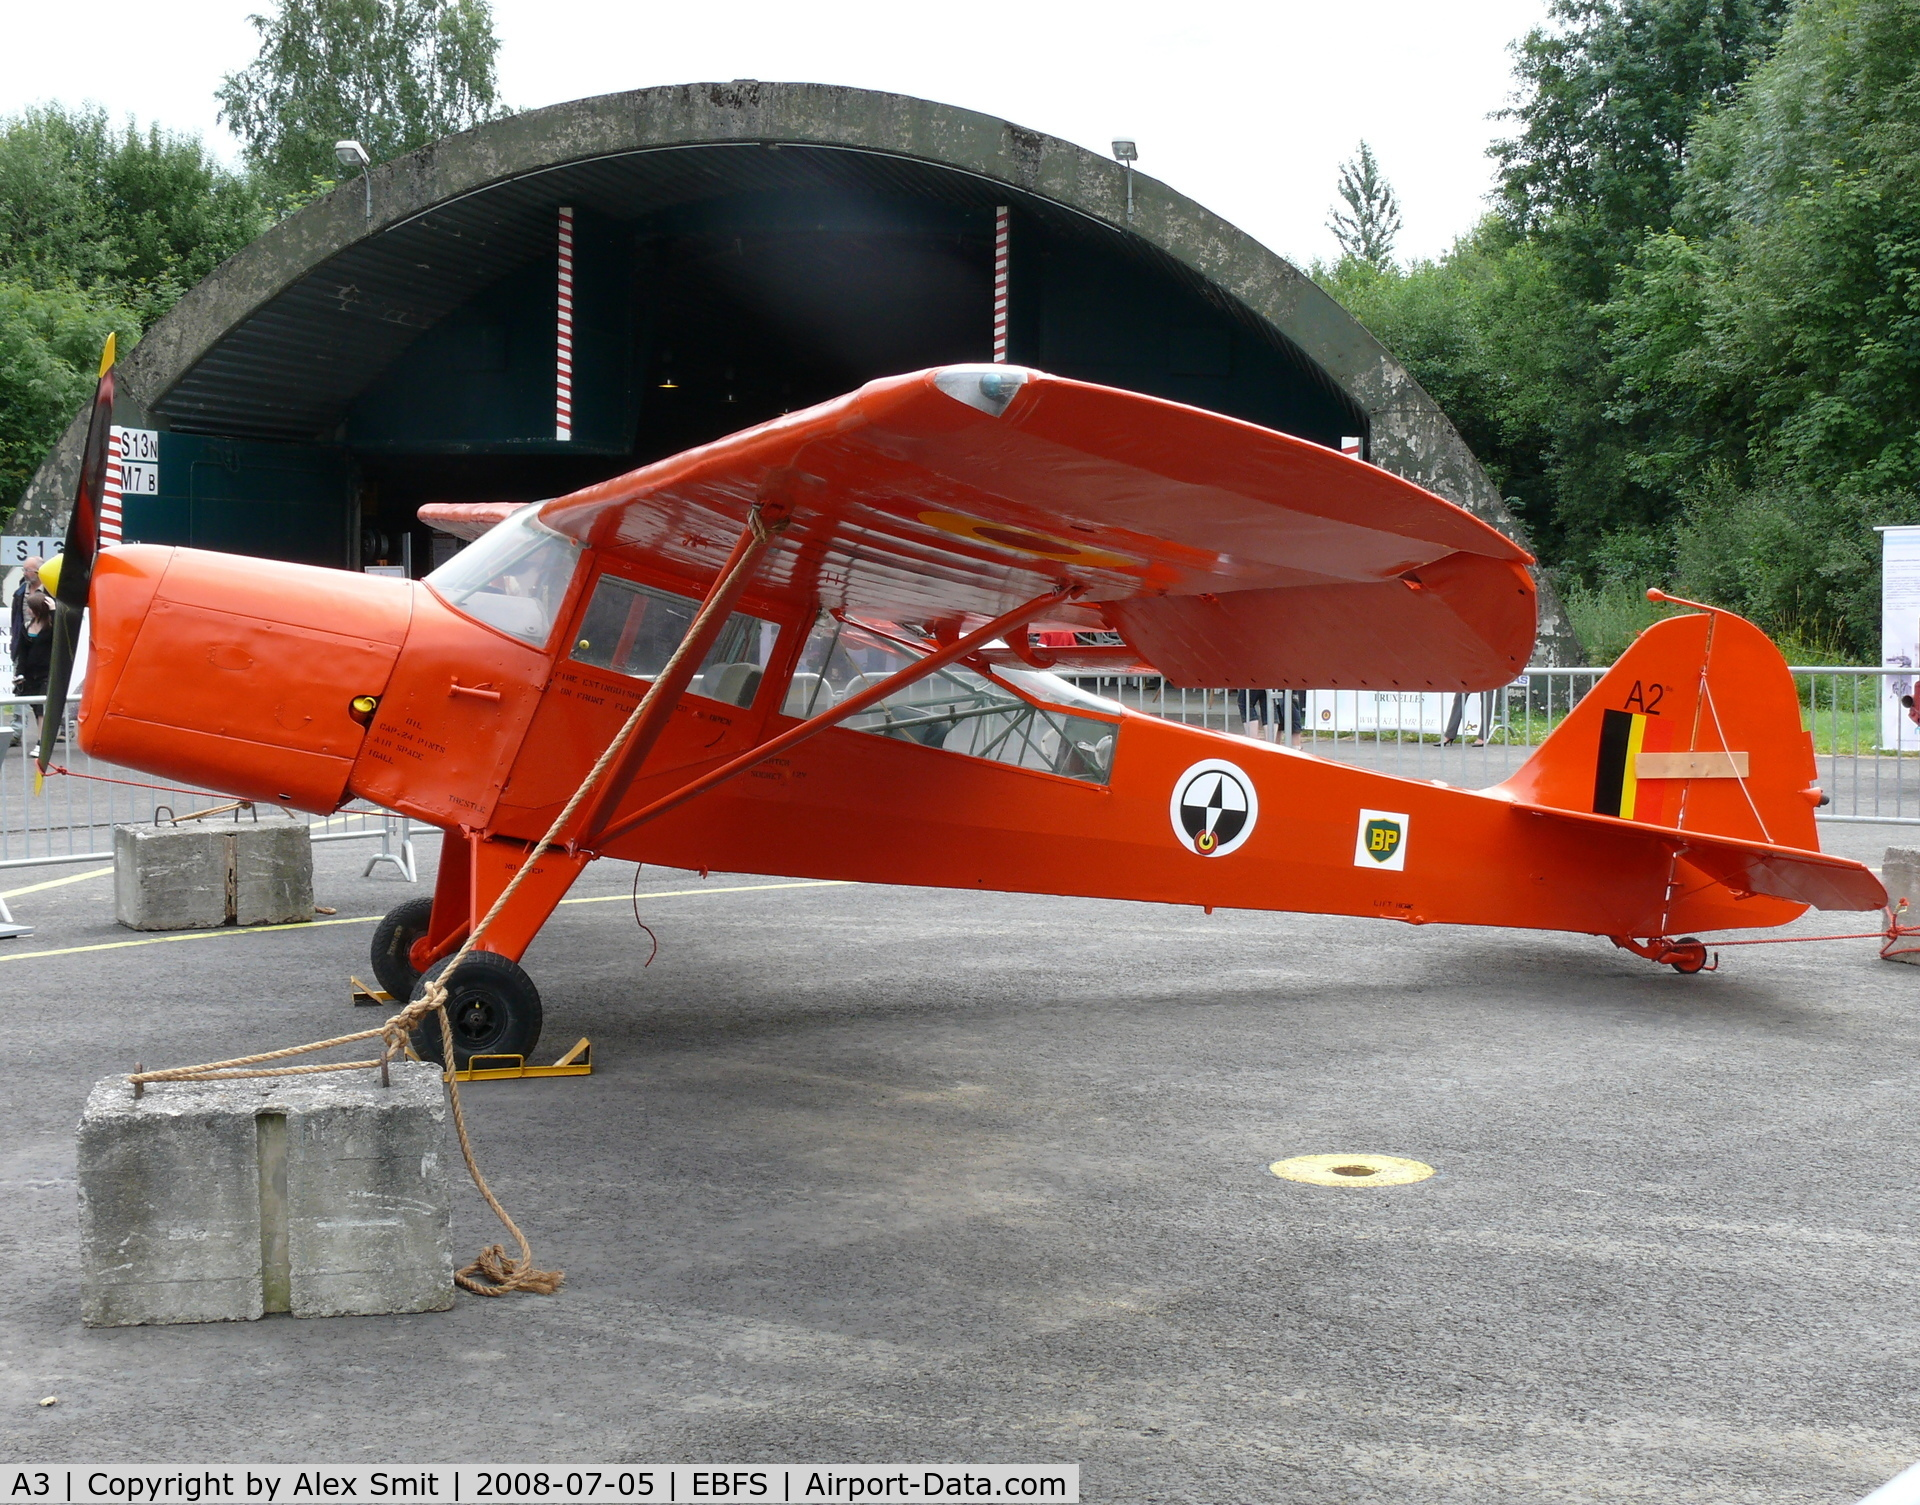 A3, Auster AOP.6 C/N 2818, Auster AOP6 A3 Belgian Air Force painted as A2 in the colors of the Belgian Arctic expeditions,